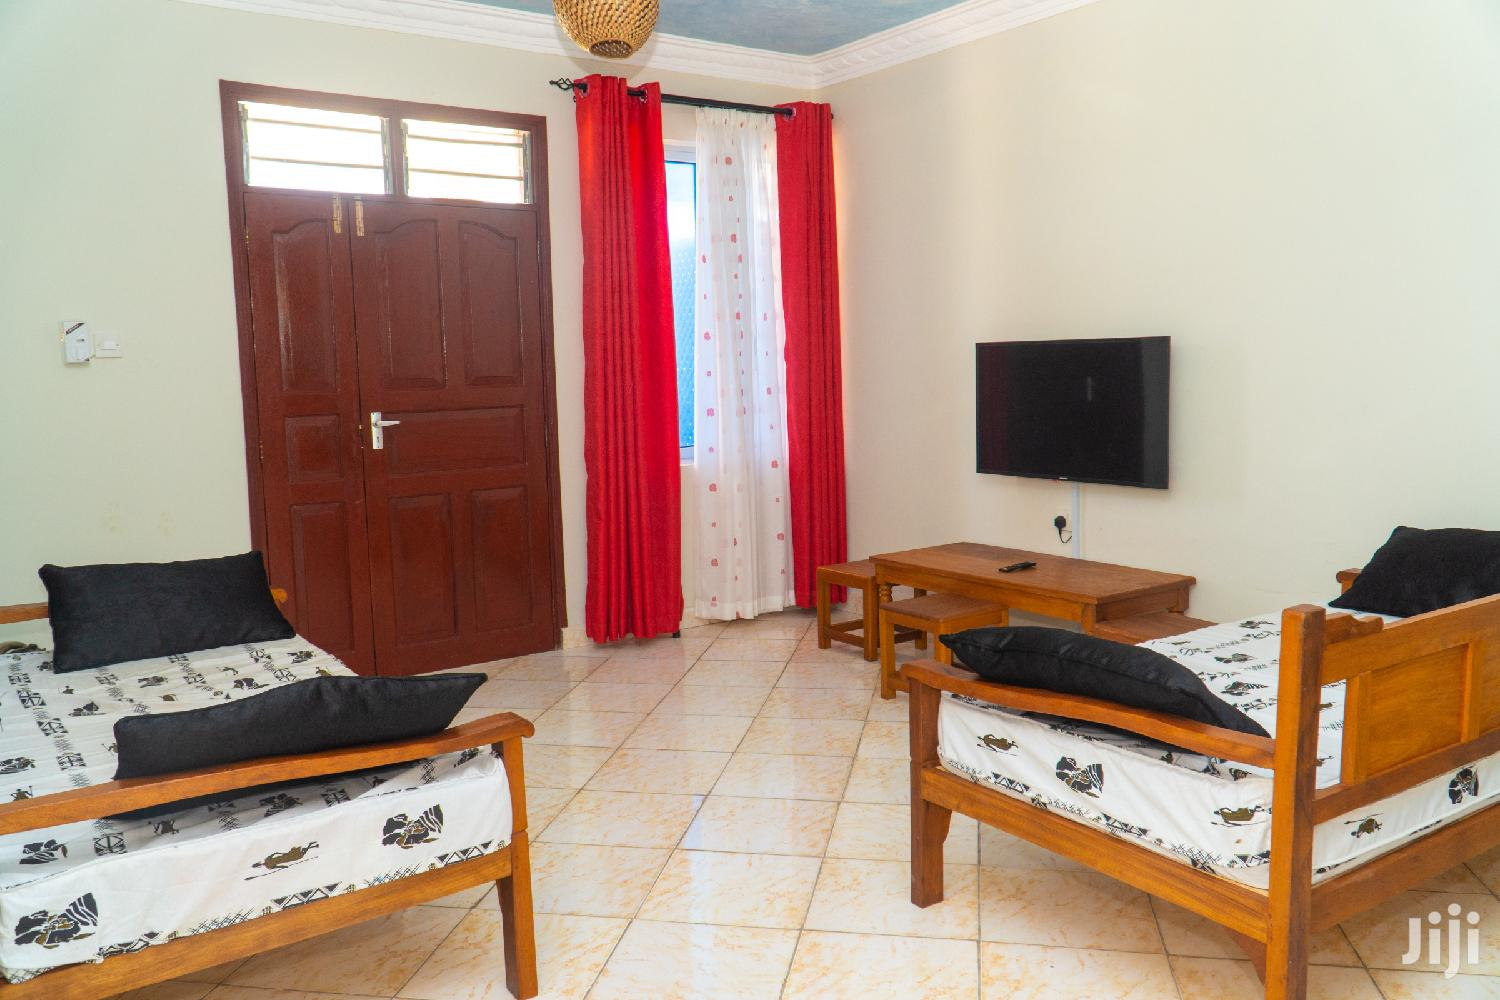 1 Bedroom Furnished Apartment for Long Term Lease in Diani | Houses & Apartments For Rent for sale in Ukunda, Kwale, Kenya